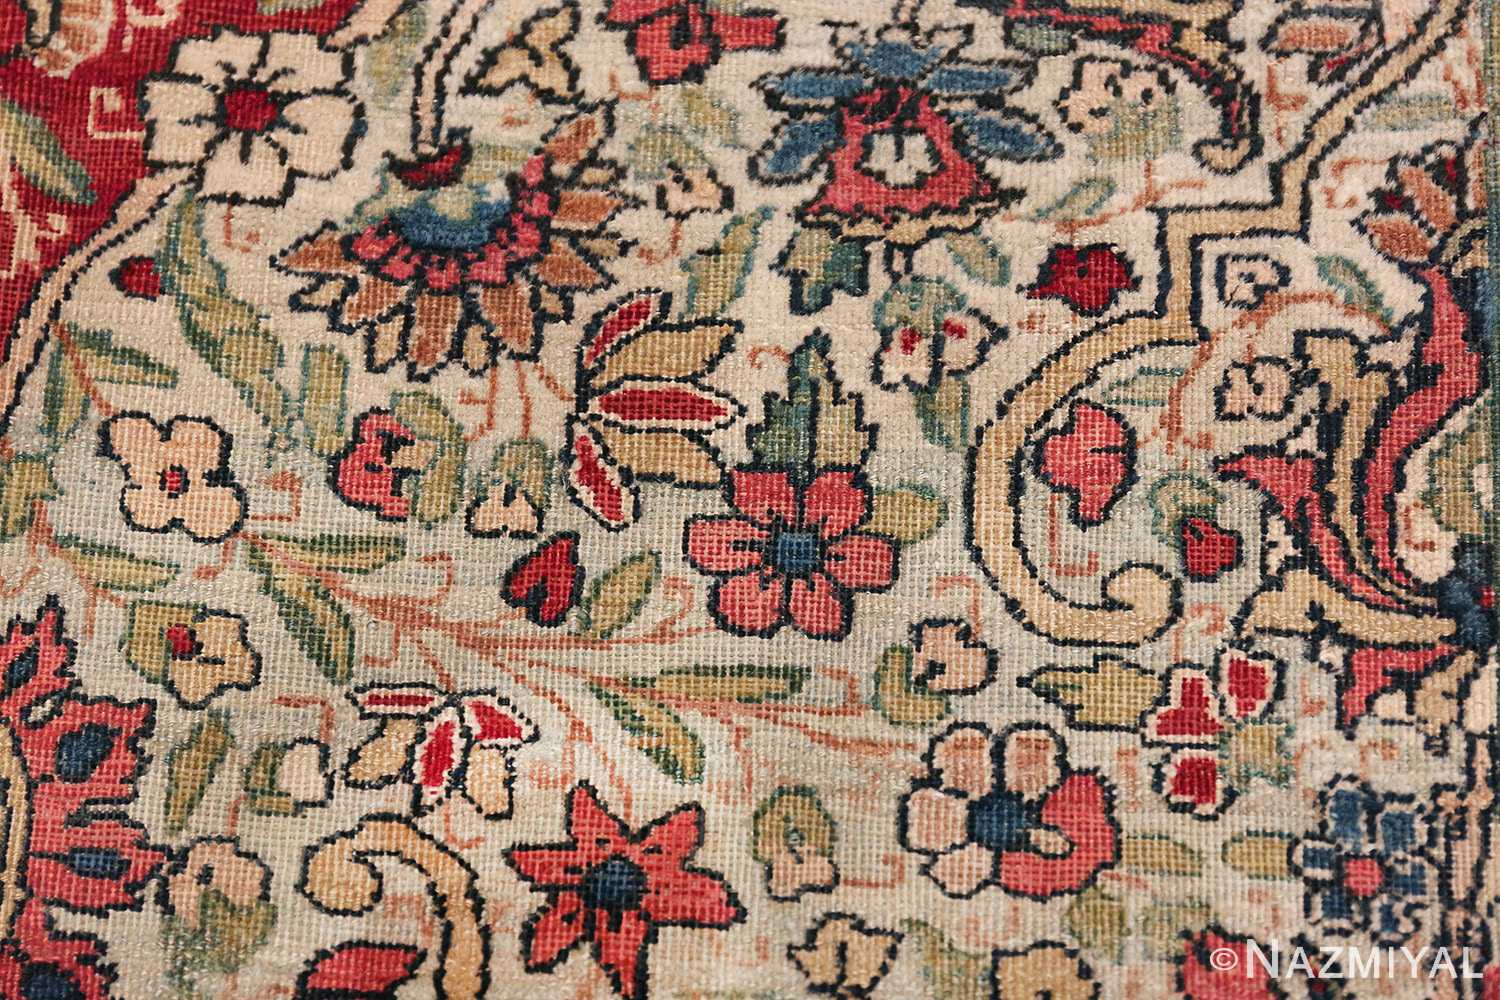 Fine Square Antique Persian Kerman Lavar Rug 47429 Tiny Field Flowers Nazmiyal